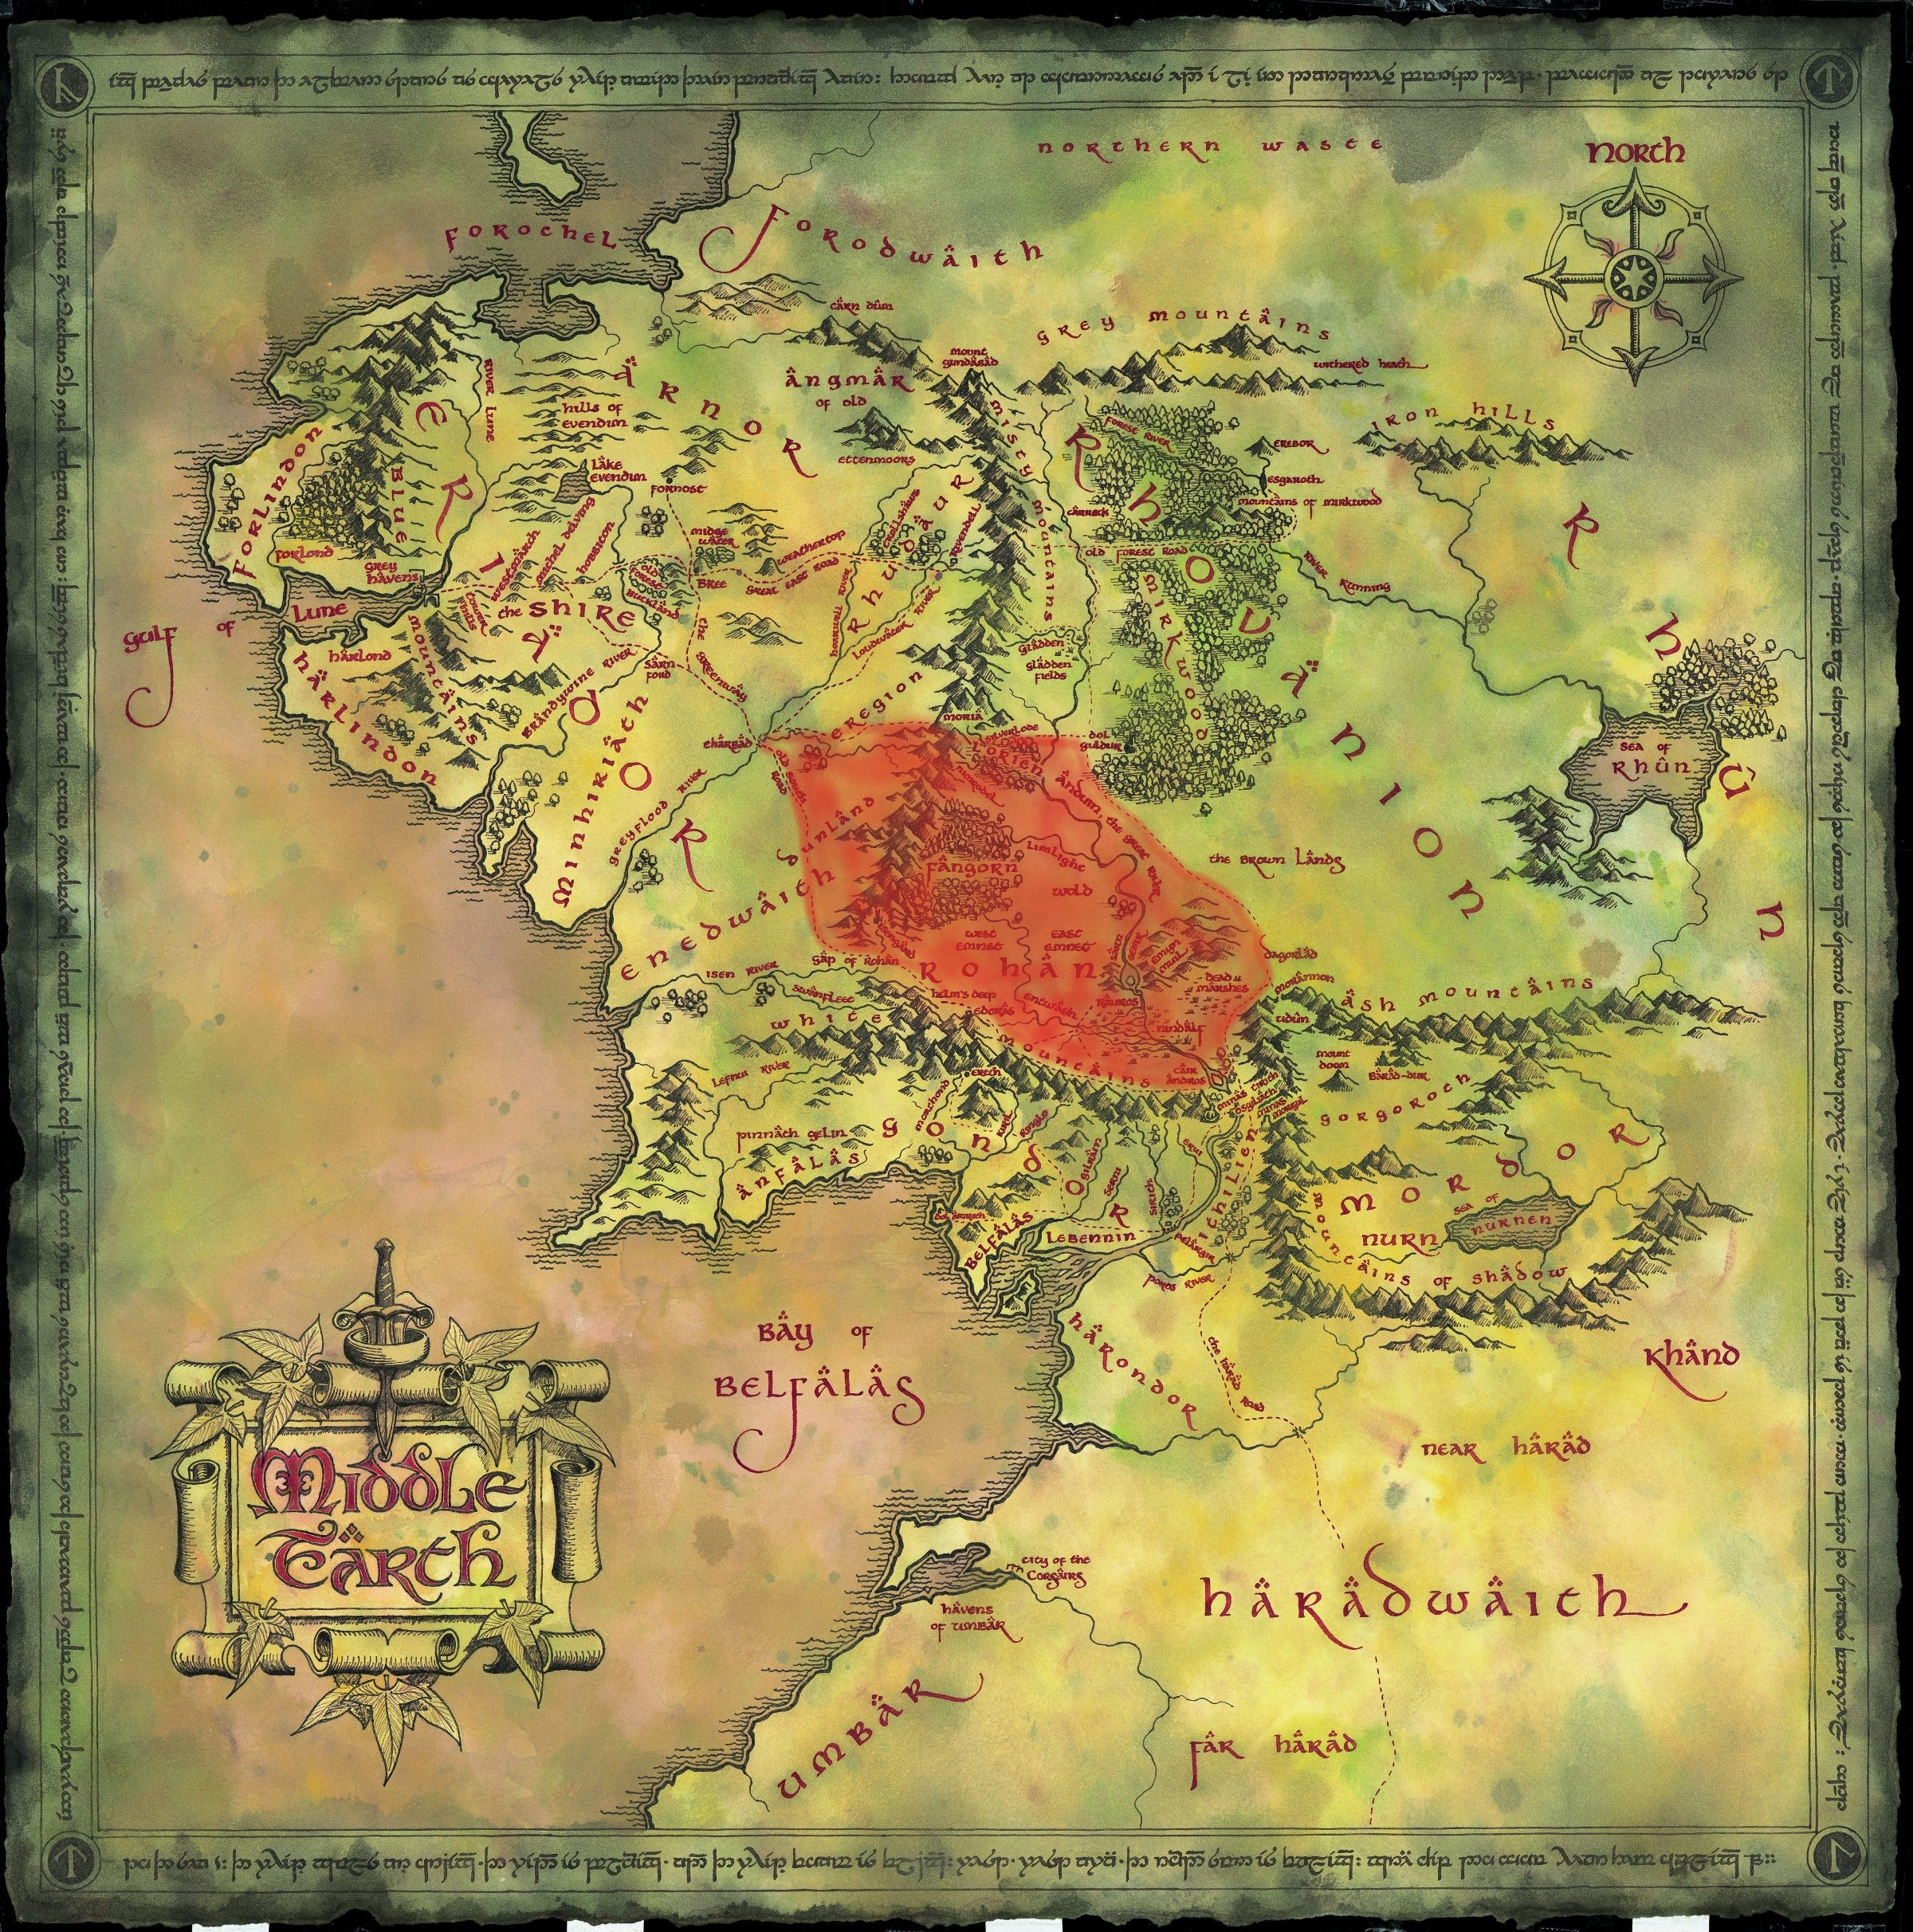 Maps The One Wiki to Rule Them All – Lord of the Rings Detailed Map